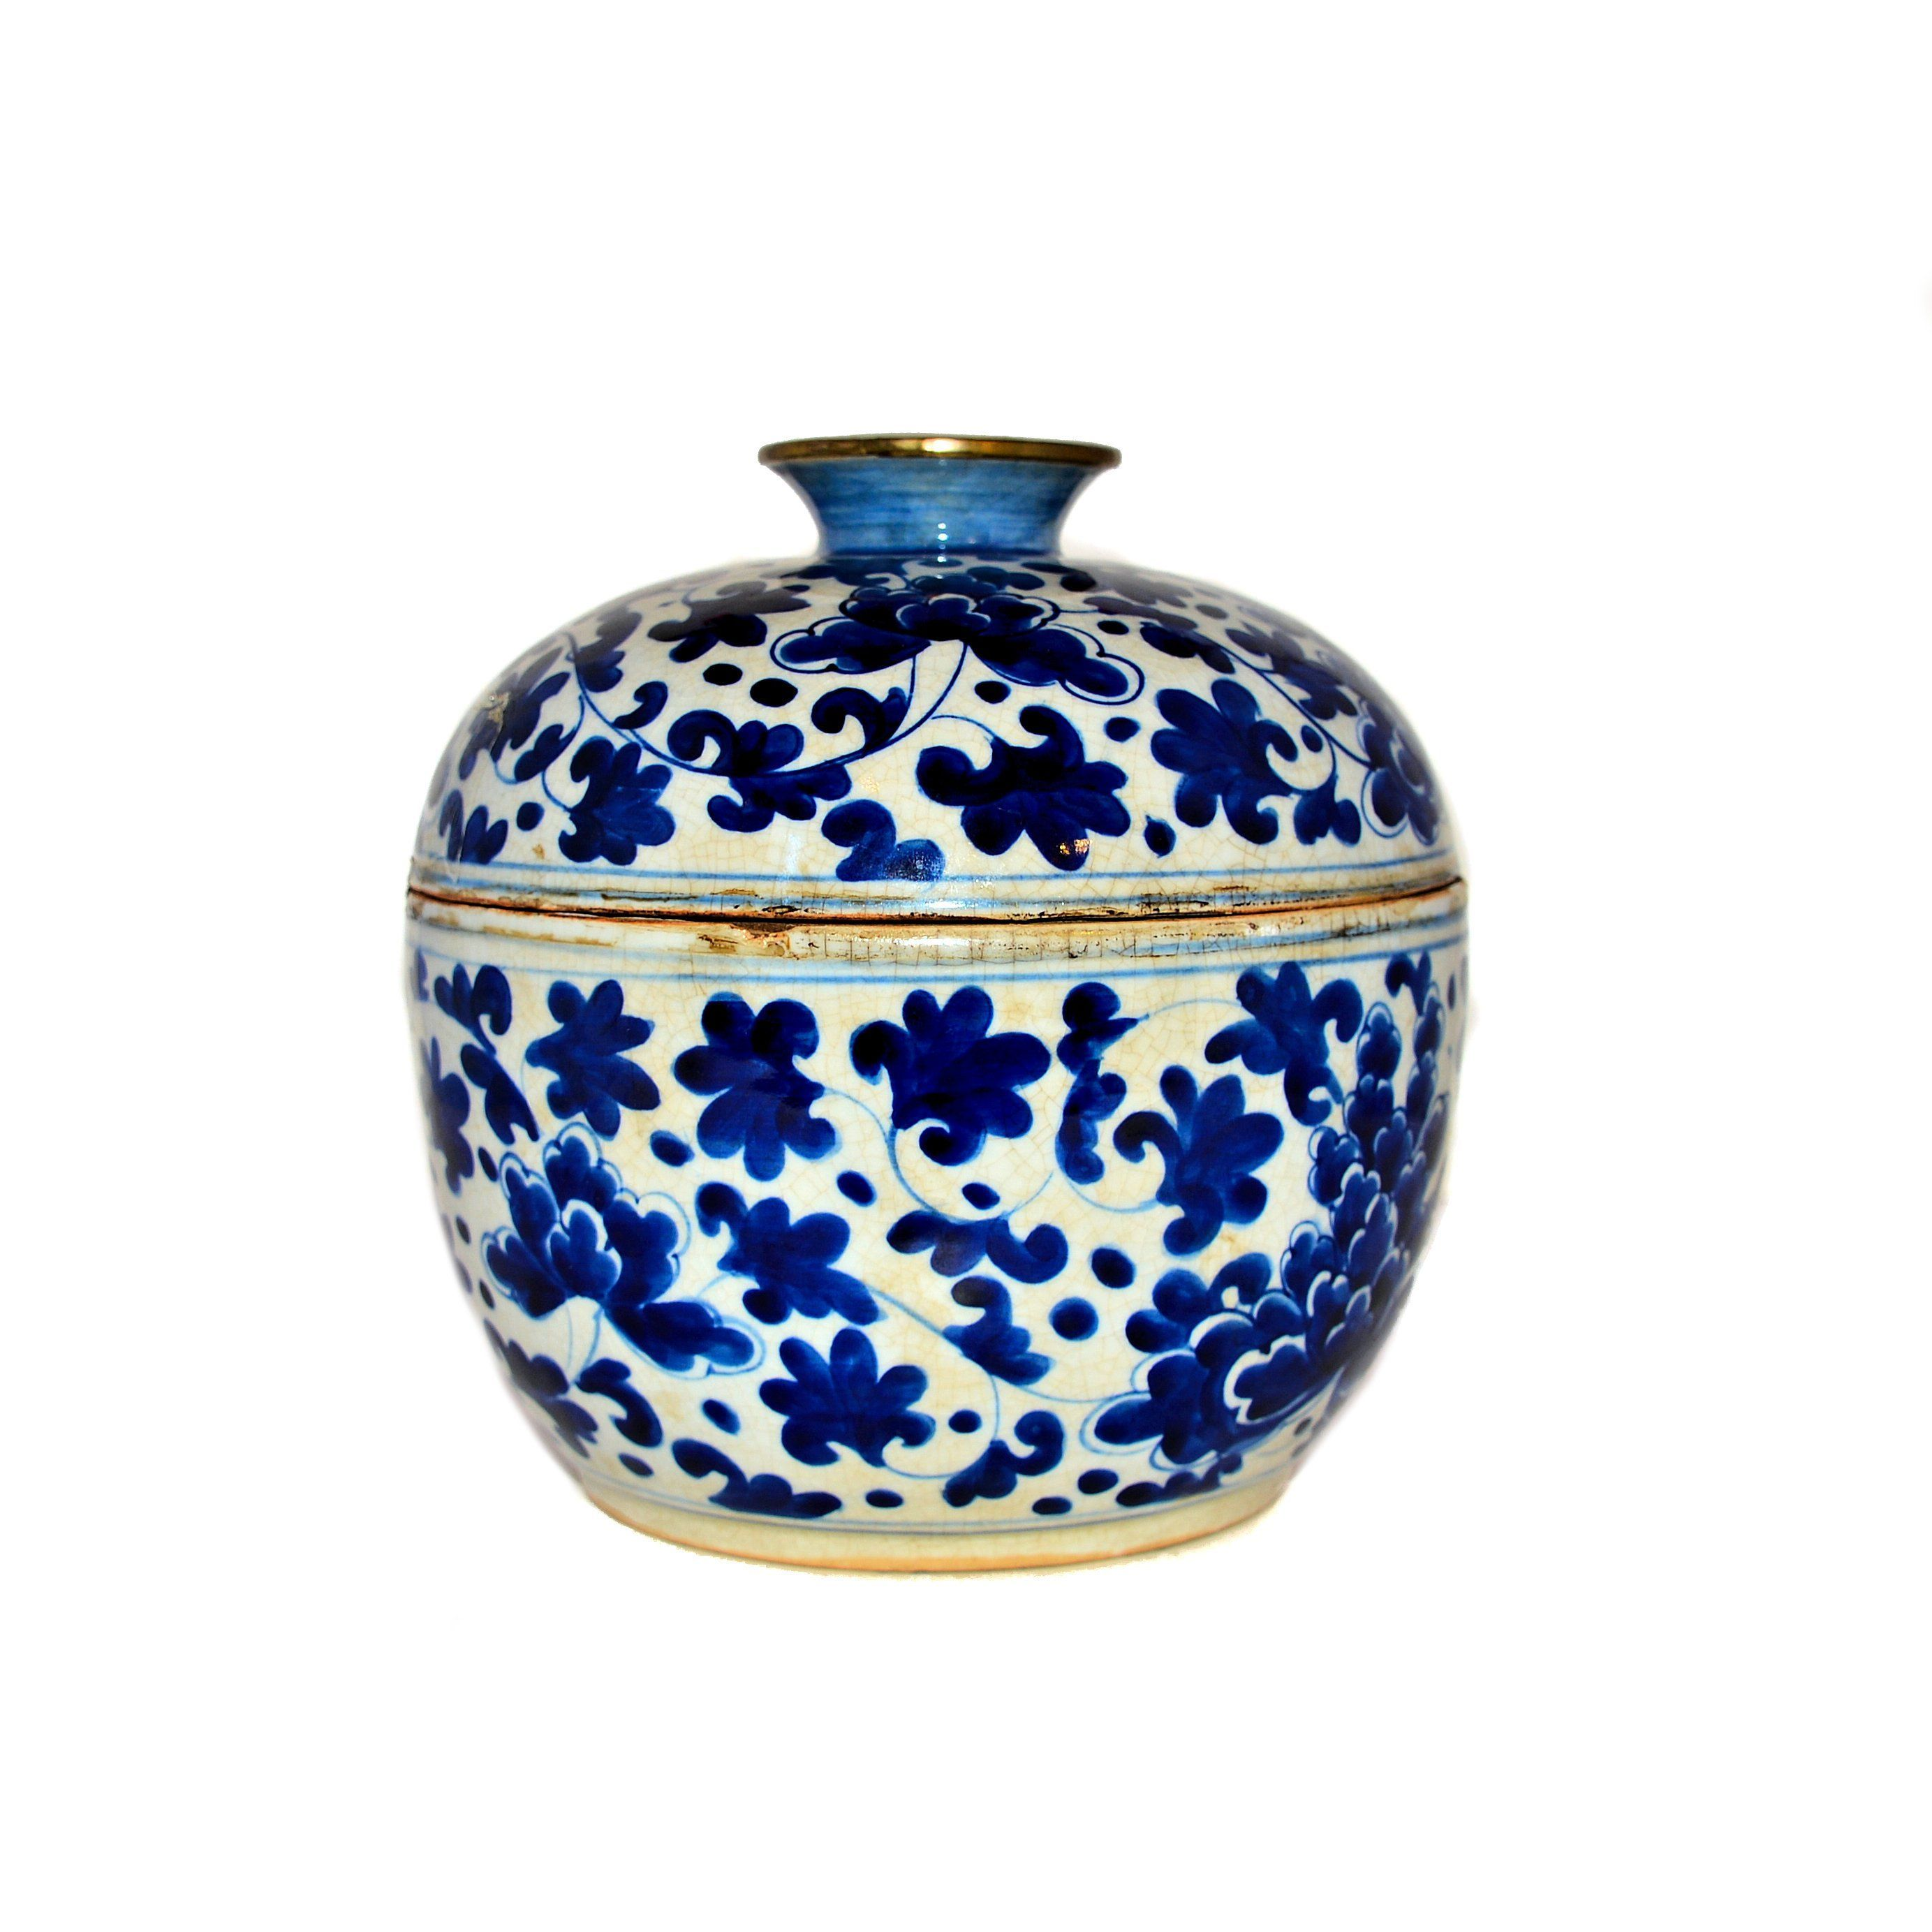 Antique Blue And White Ceramic Jar From Thailand Dimensions 7 25 Wide X 7 25 High Weight 3 6 Lbs White Ceramics Chinese Porcelain Ginger Jars